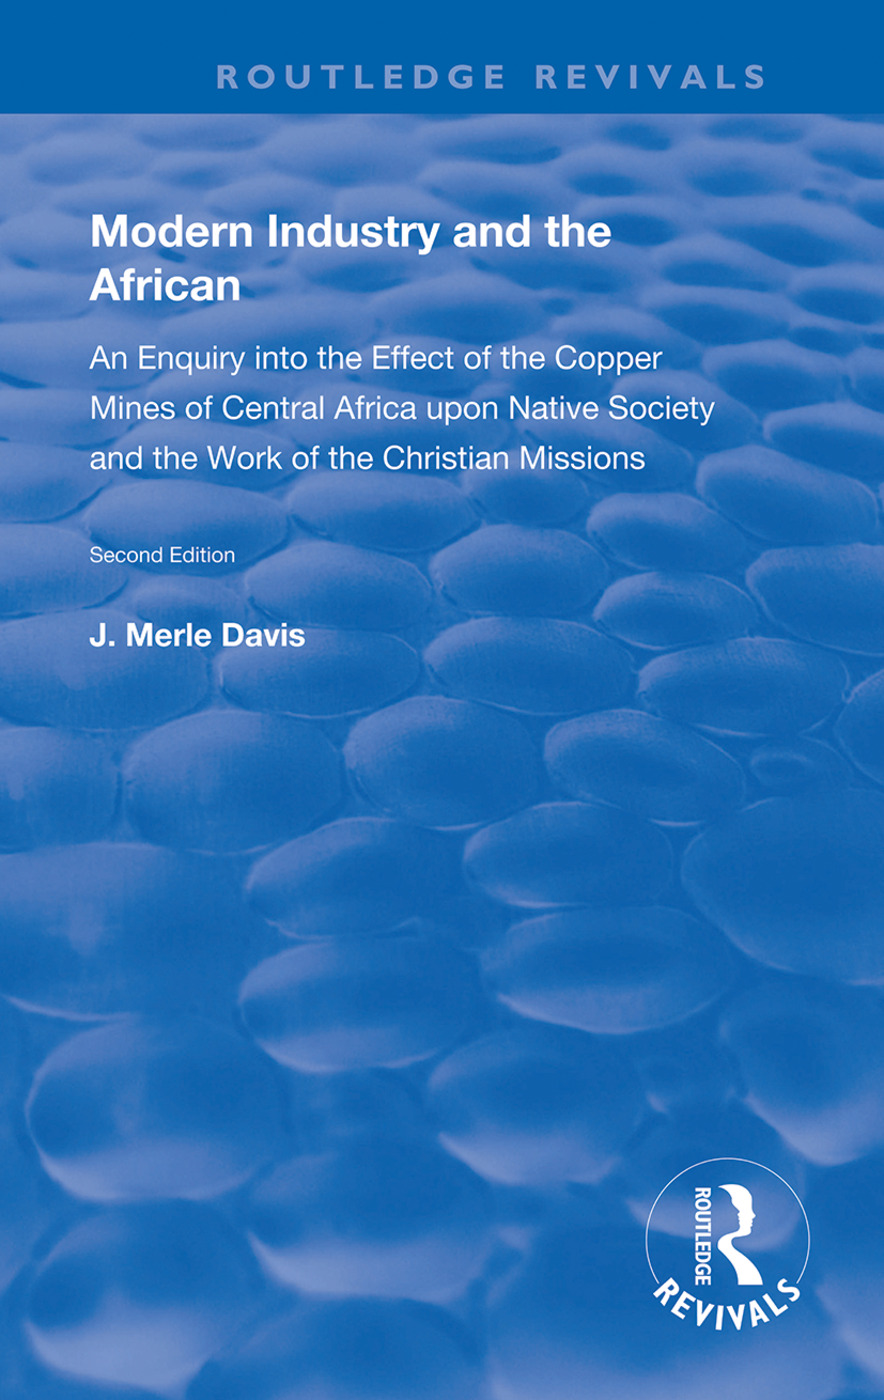 Modern Industry and the African: An Enquiry into the Effect of the Copper Mines of Central Africa upon Native Society and the Work of the Christian Missions book cover